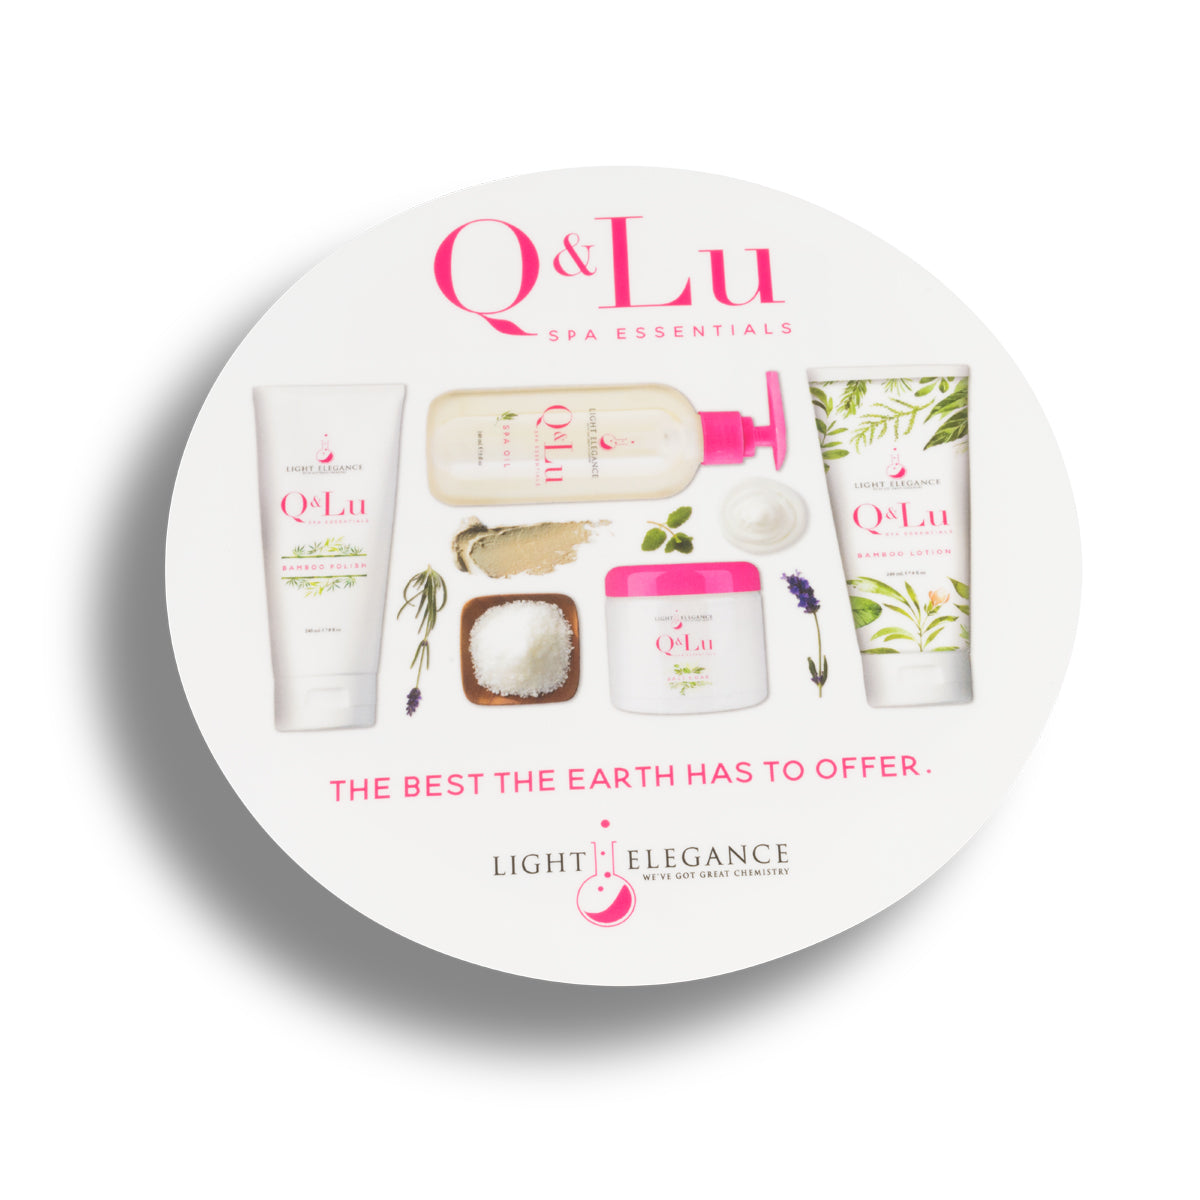 Q&Lu Spa Essentials Window Cling